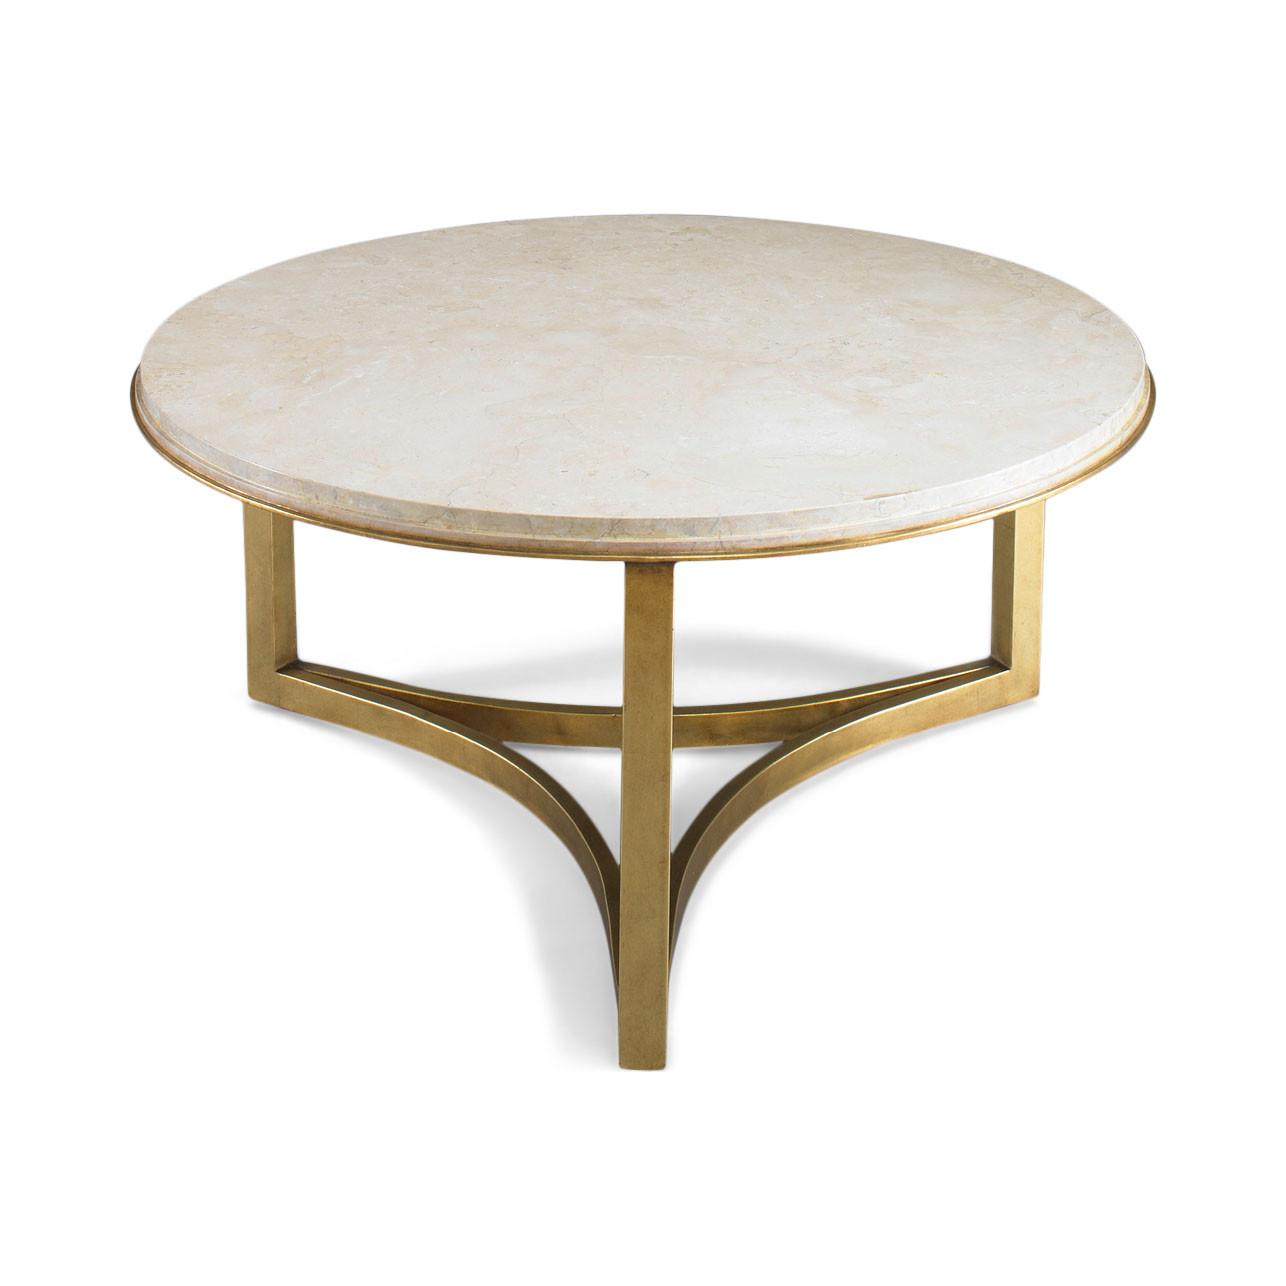 Dwell Studio Milo Travertine Coffee Table